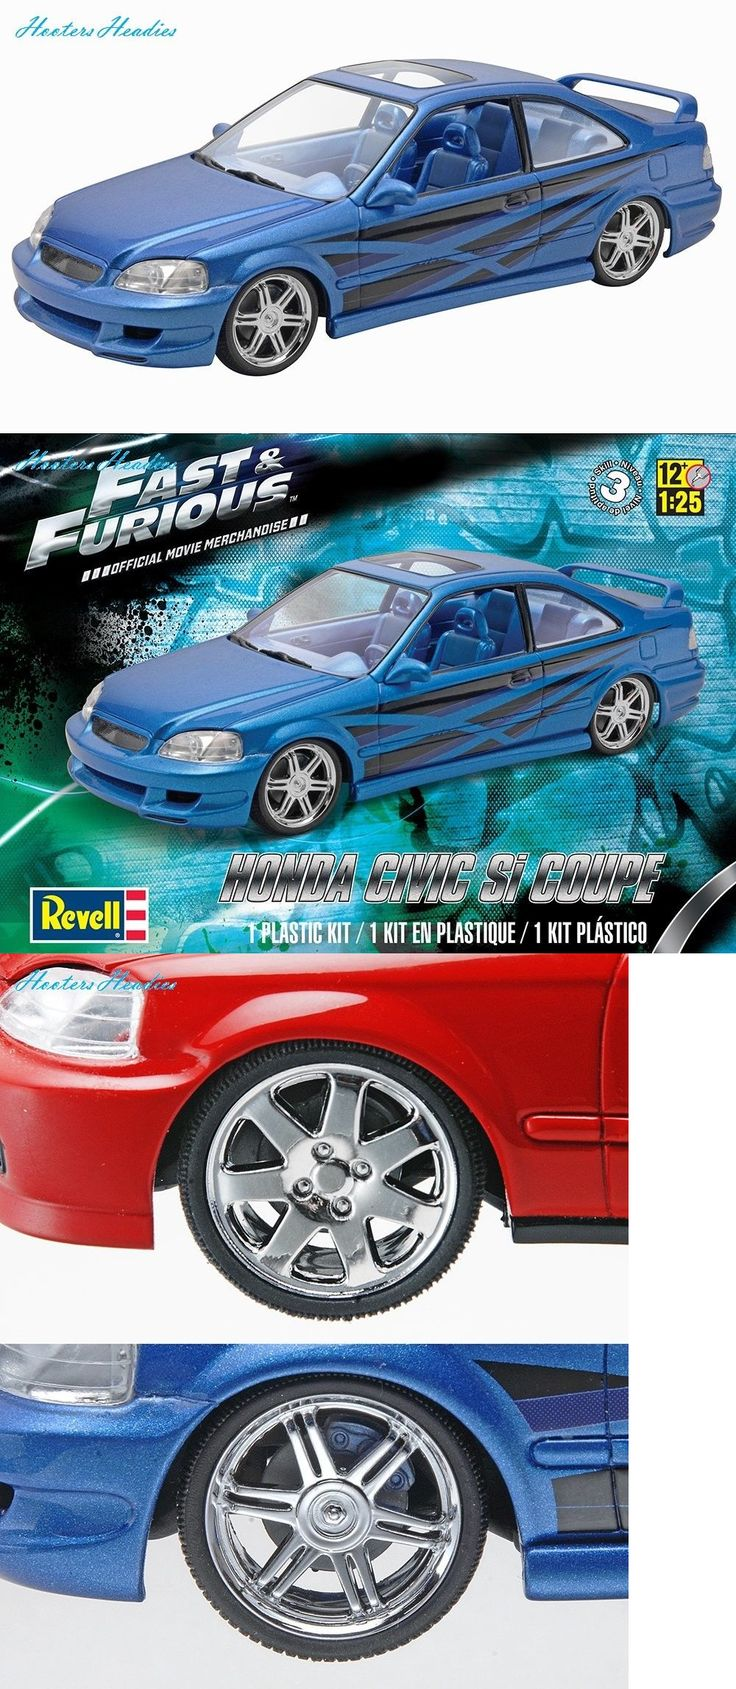 1 25 Scale 145975: Revell Monogram Fast Furious Honda Civic Si Coupe Model Kit -> BUY IT NOW ONLY: $31.51 on eBay!